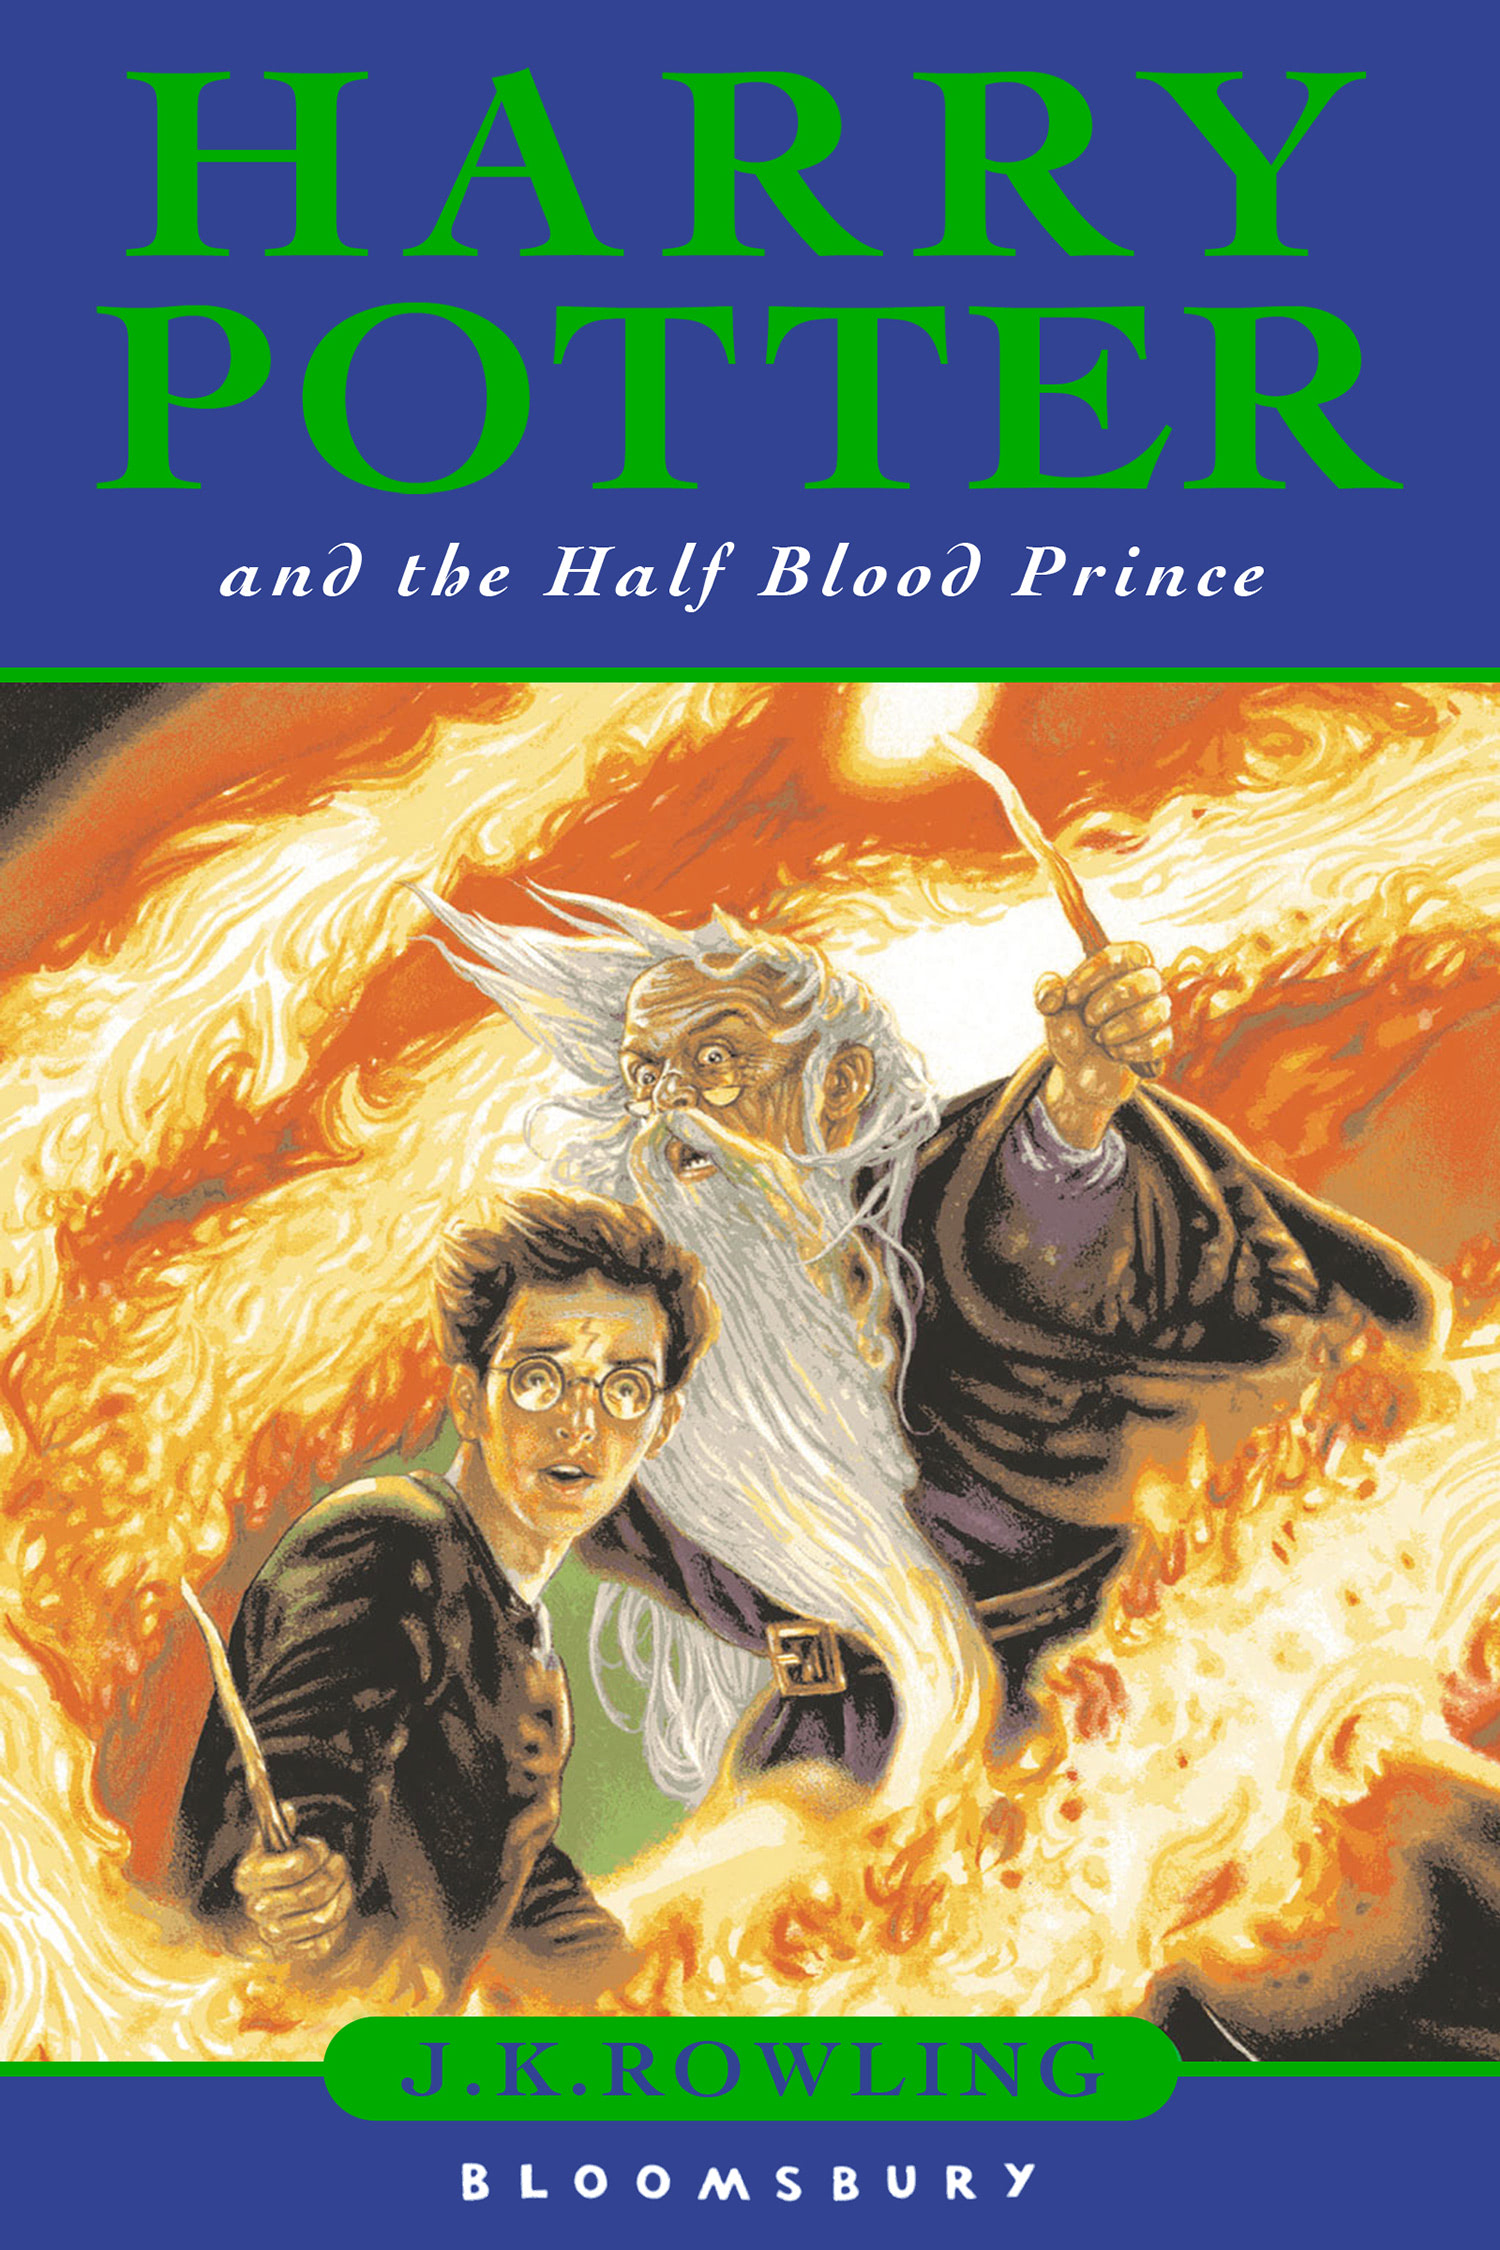 'Half-Blood Prince' UK children's edition